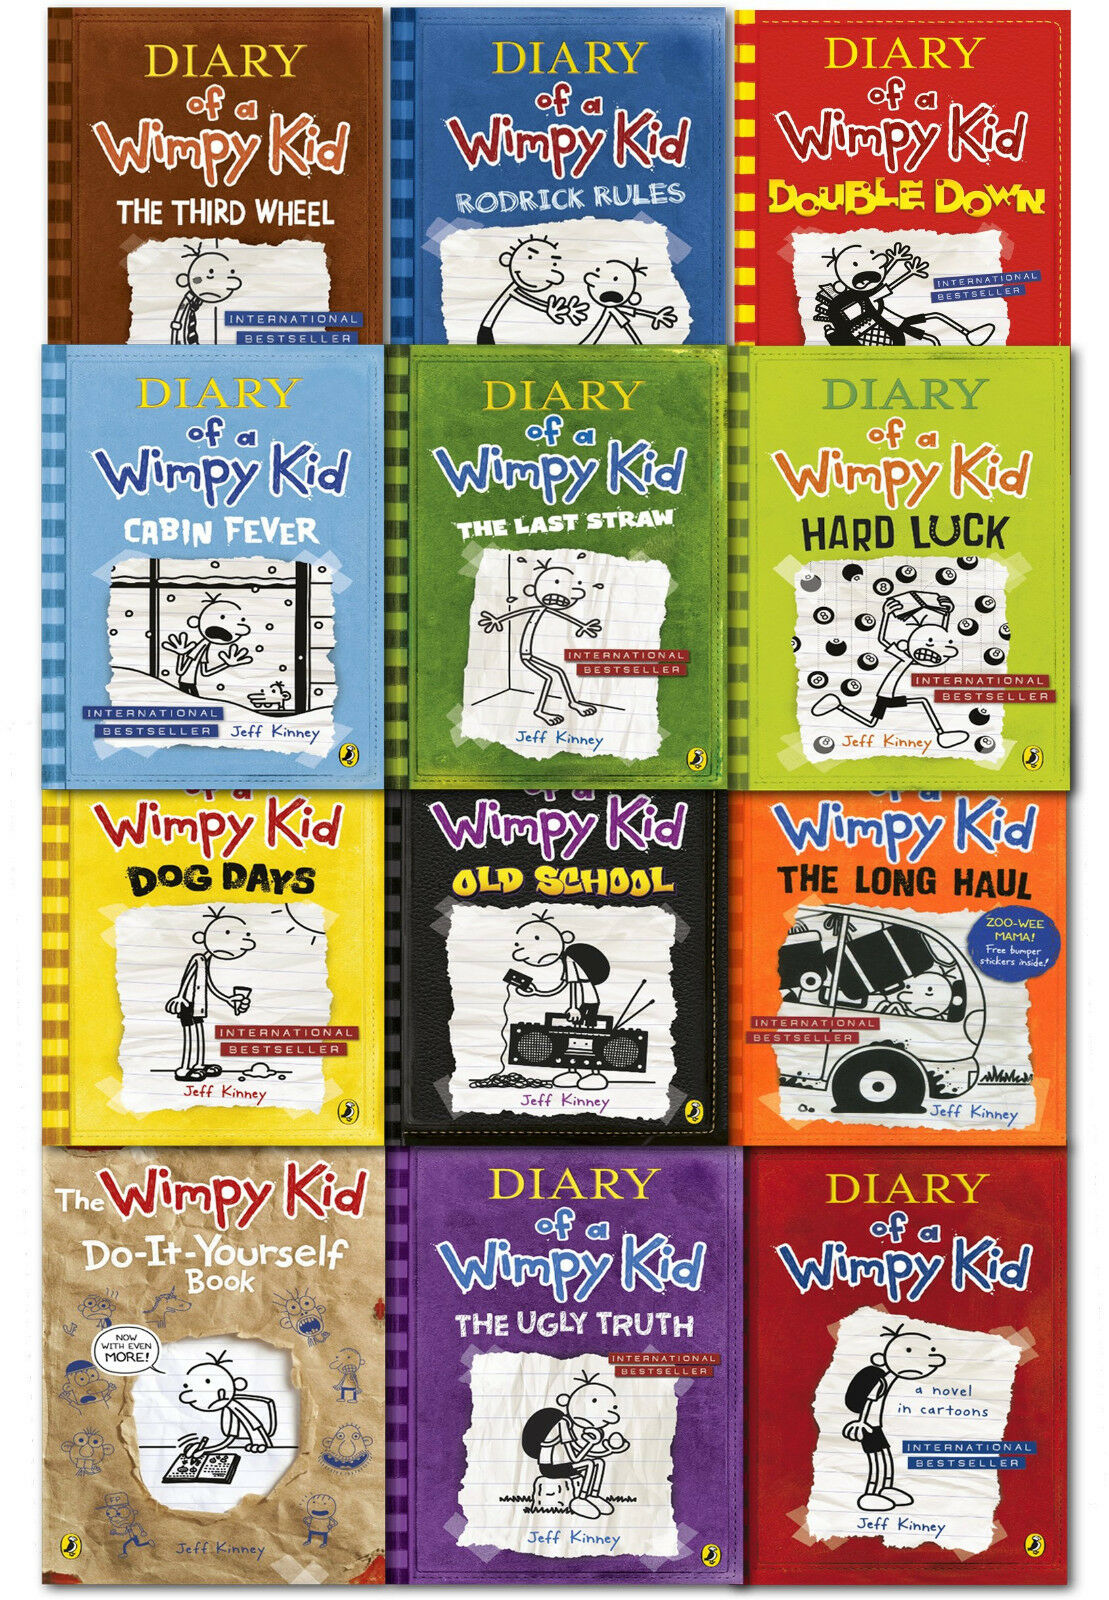 Diary Of A Wimpy Kid Author Facts